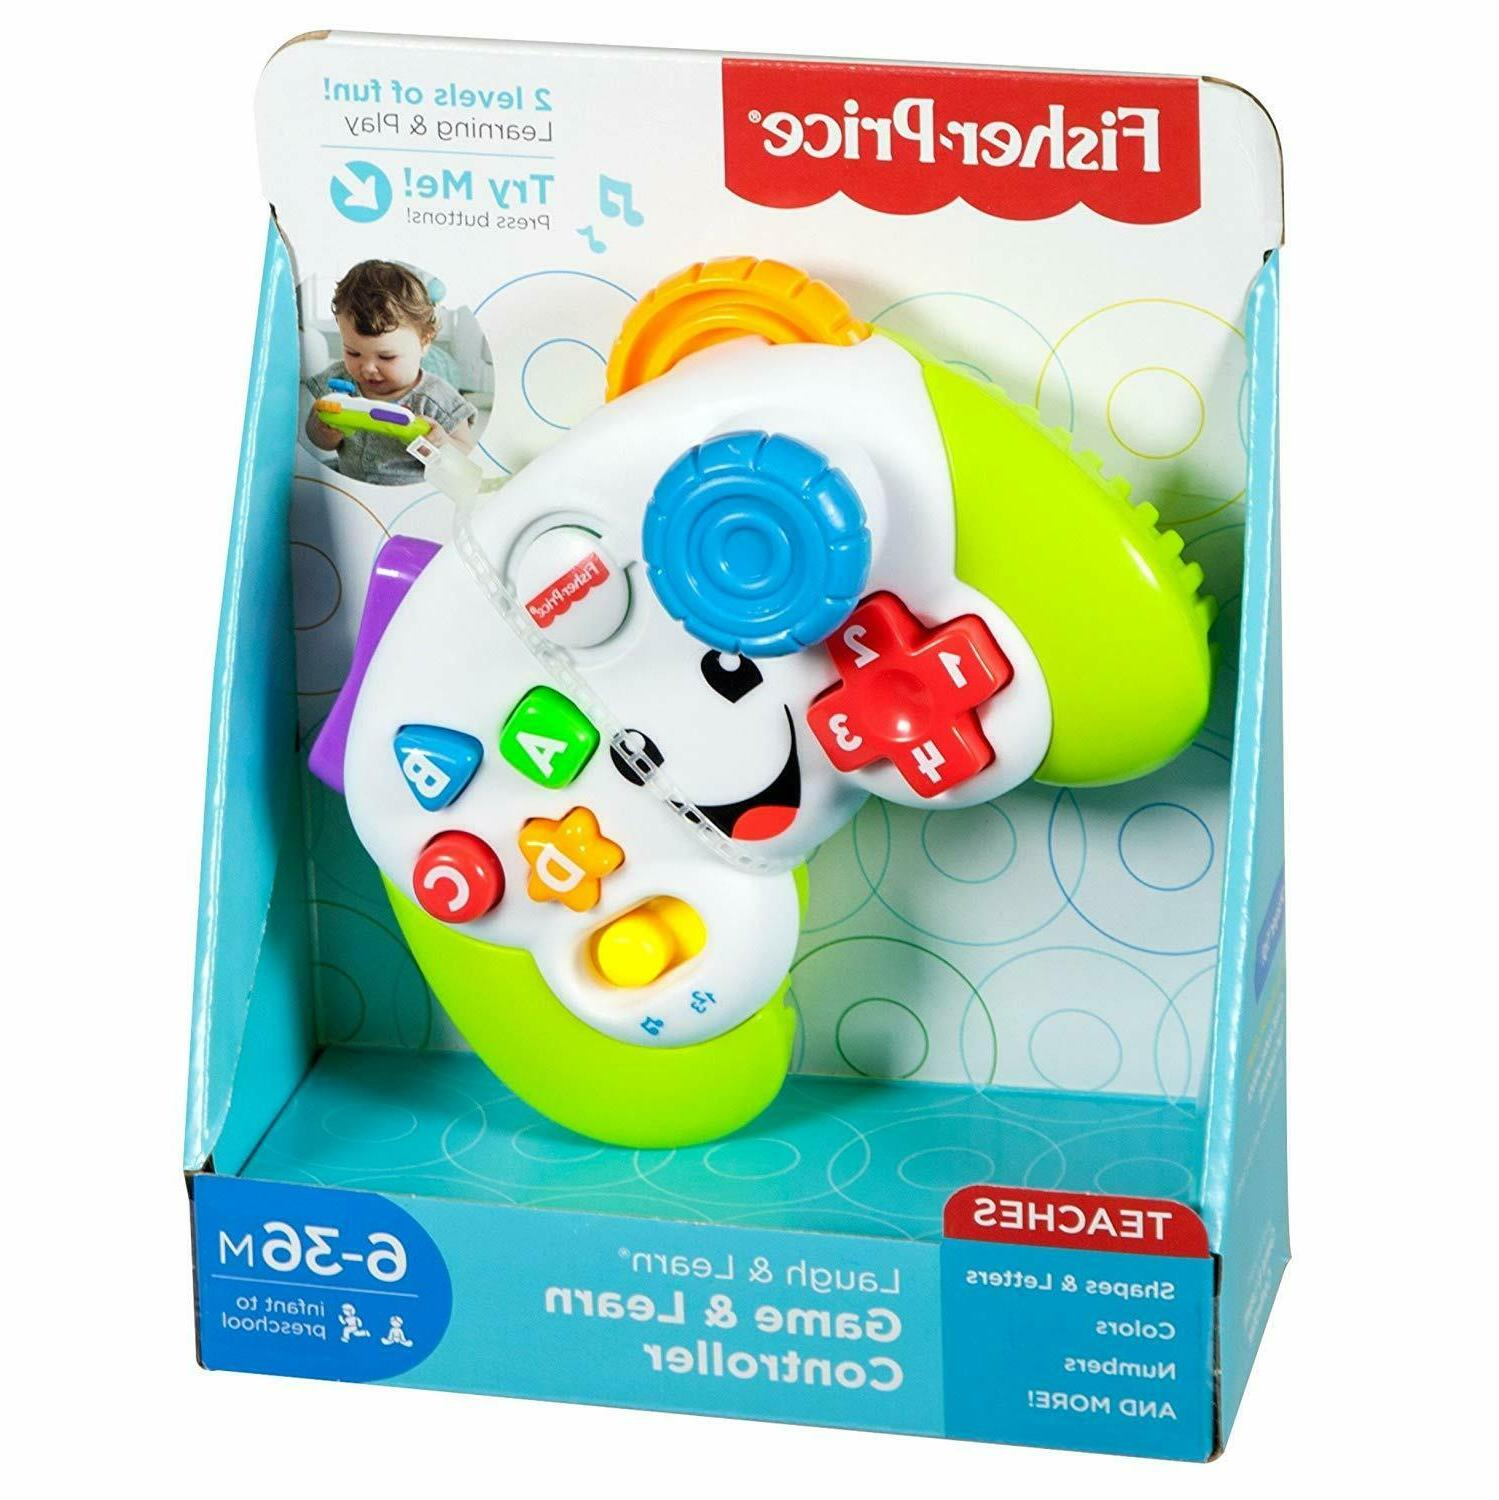 control game for toy game controller many activities